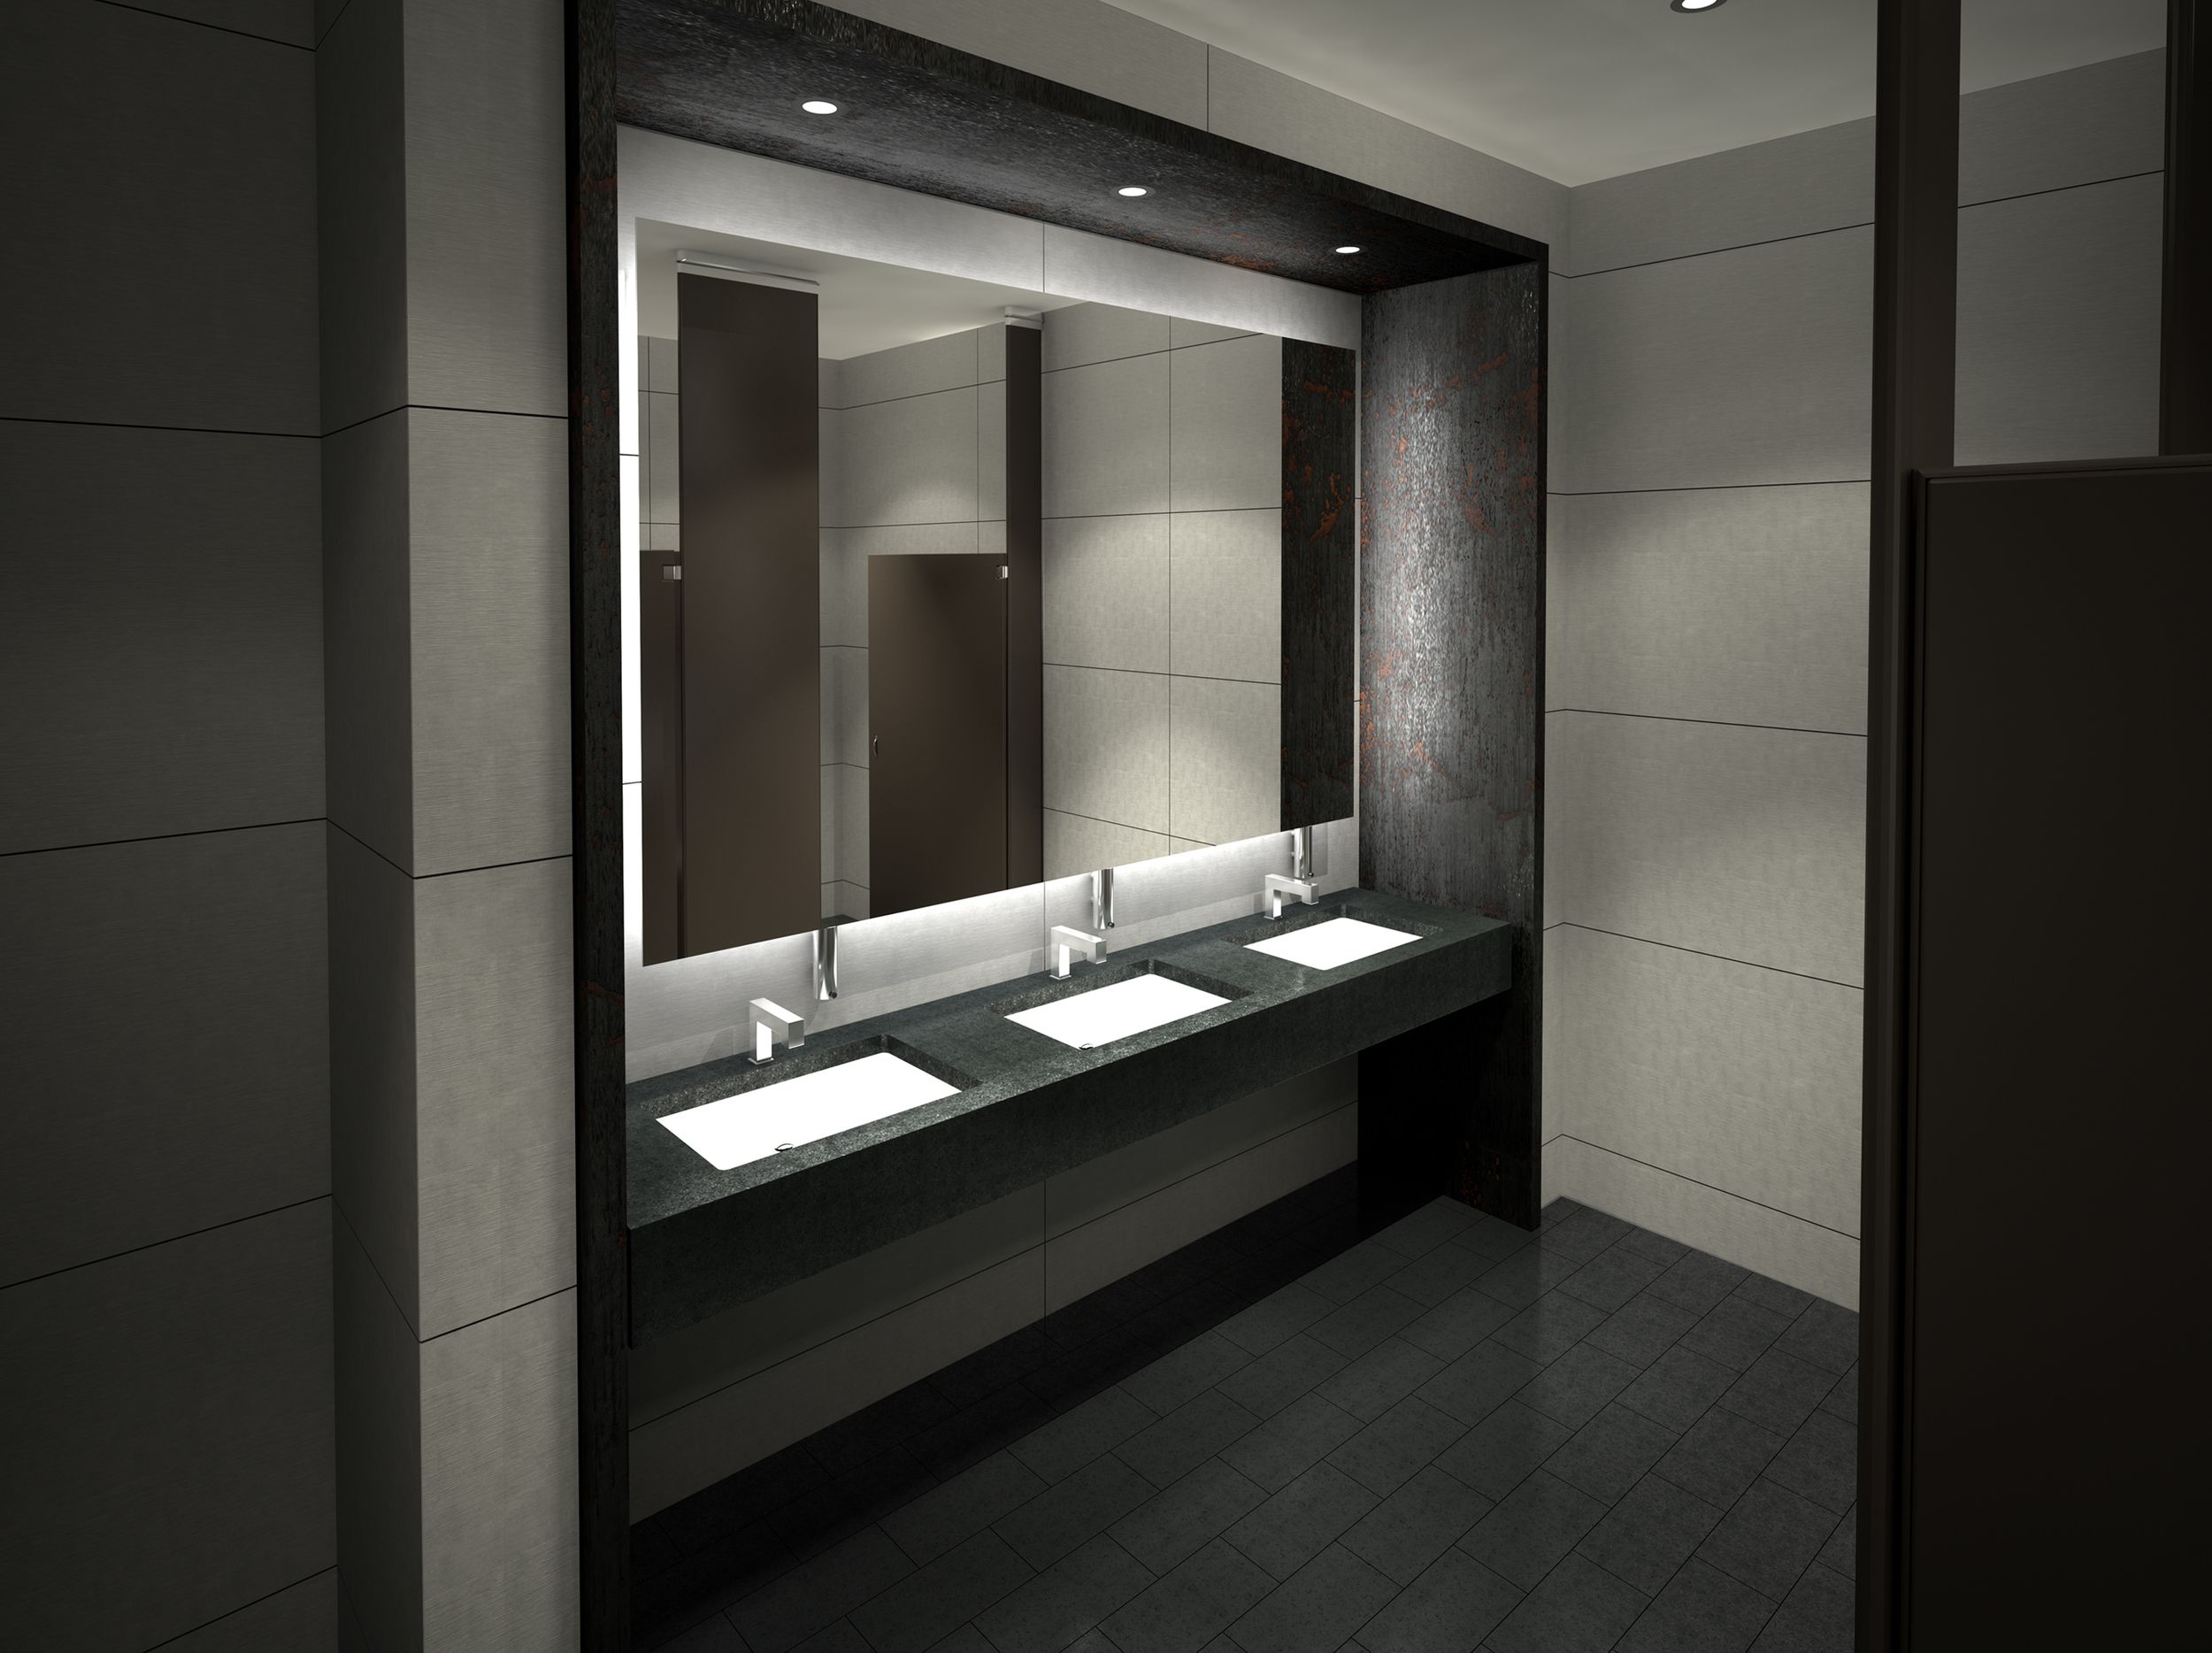 Bliss pinterest toilet washroom and public for Washroom ideas